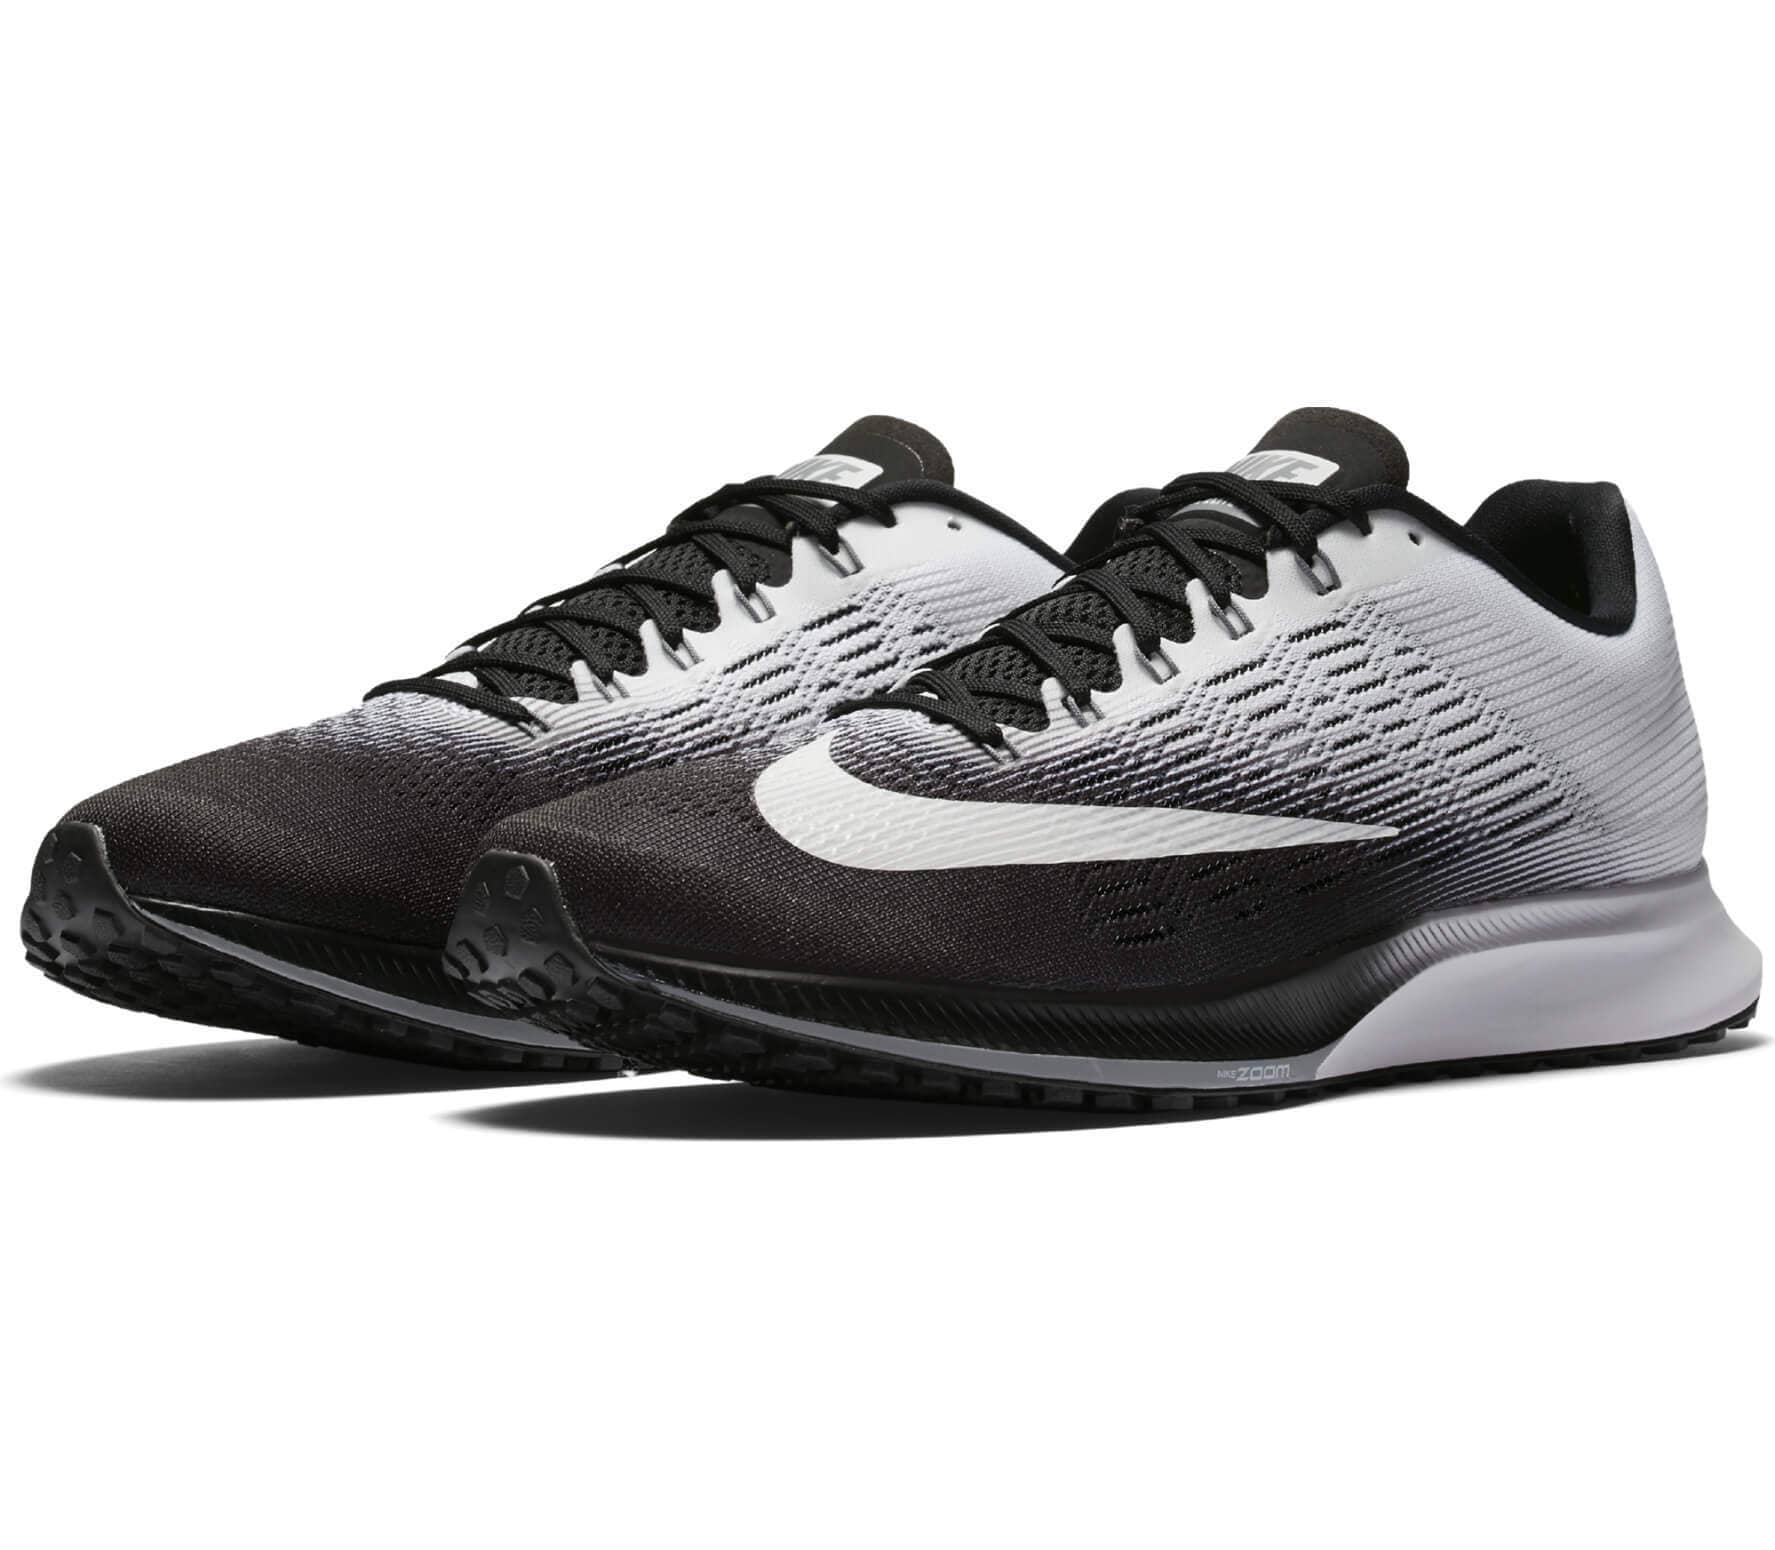 on sale 654d6 125ad Nike - Air Zoom Elite 9 men s running shoes (black white)